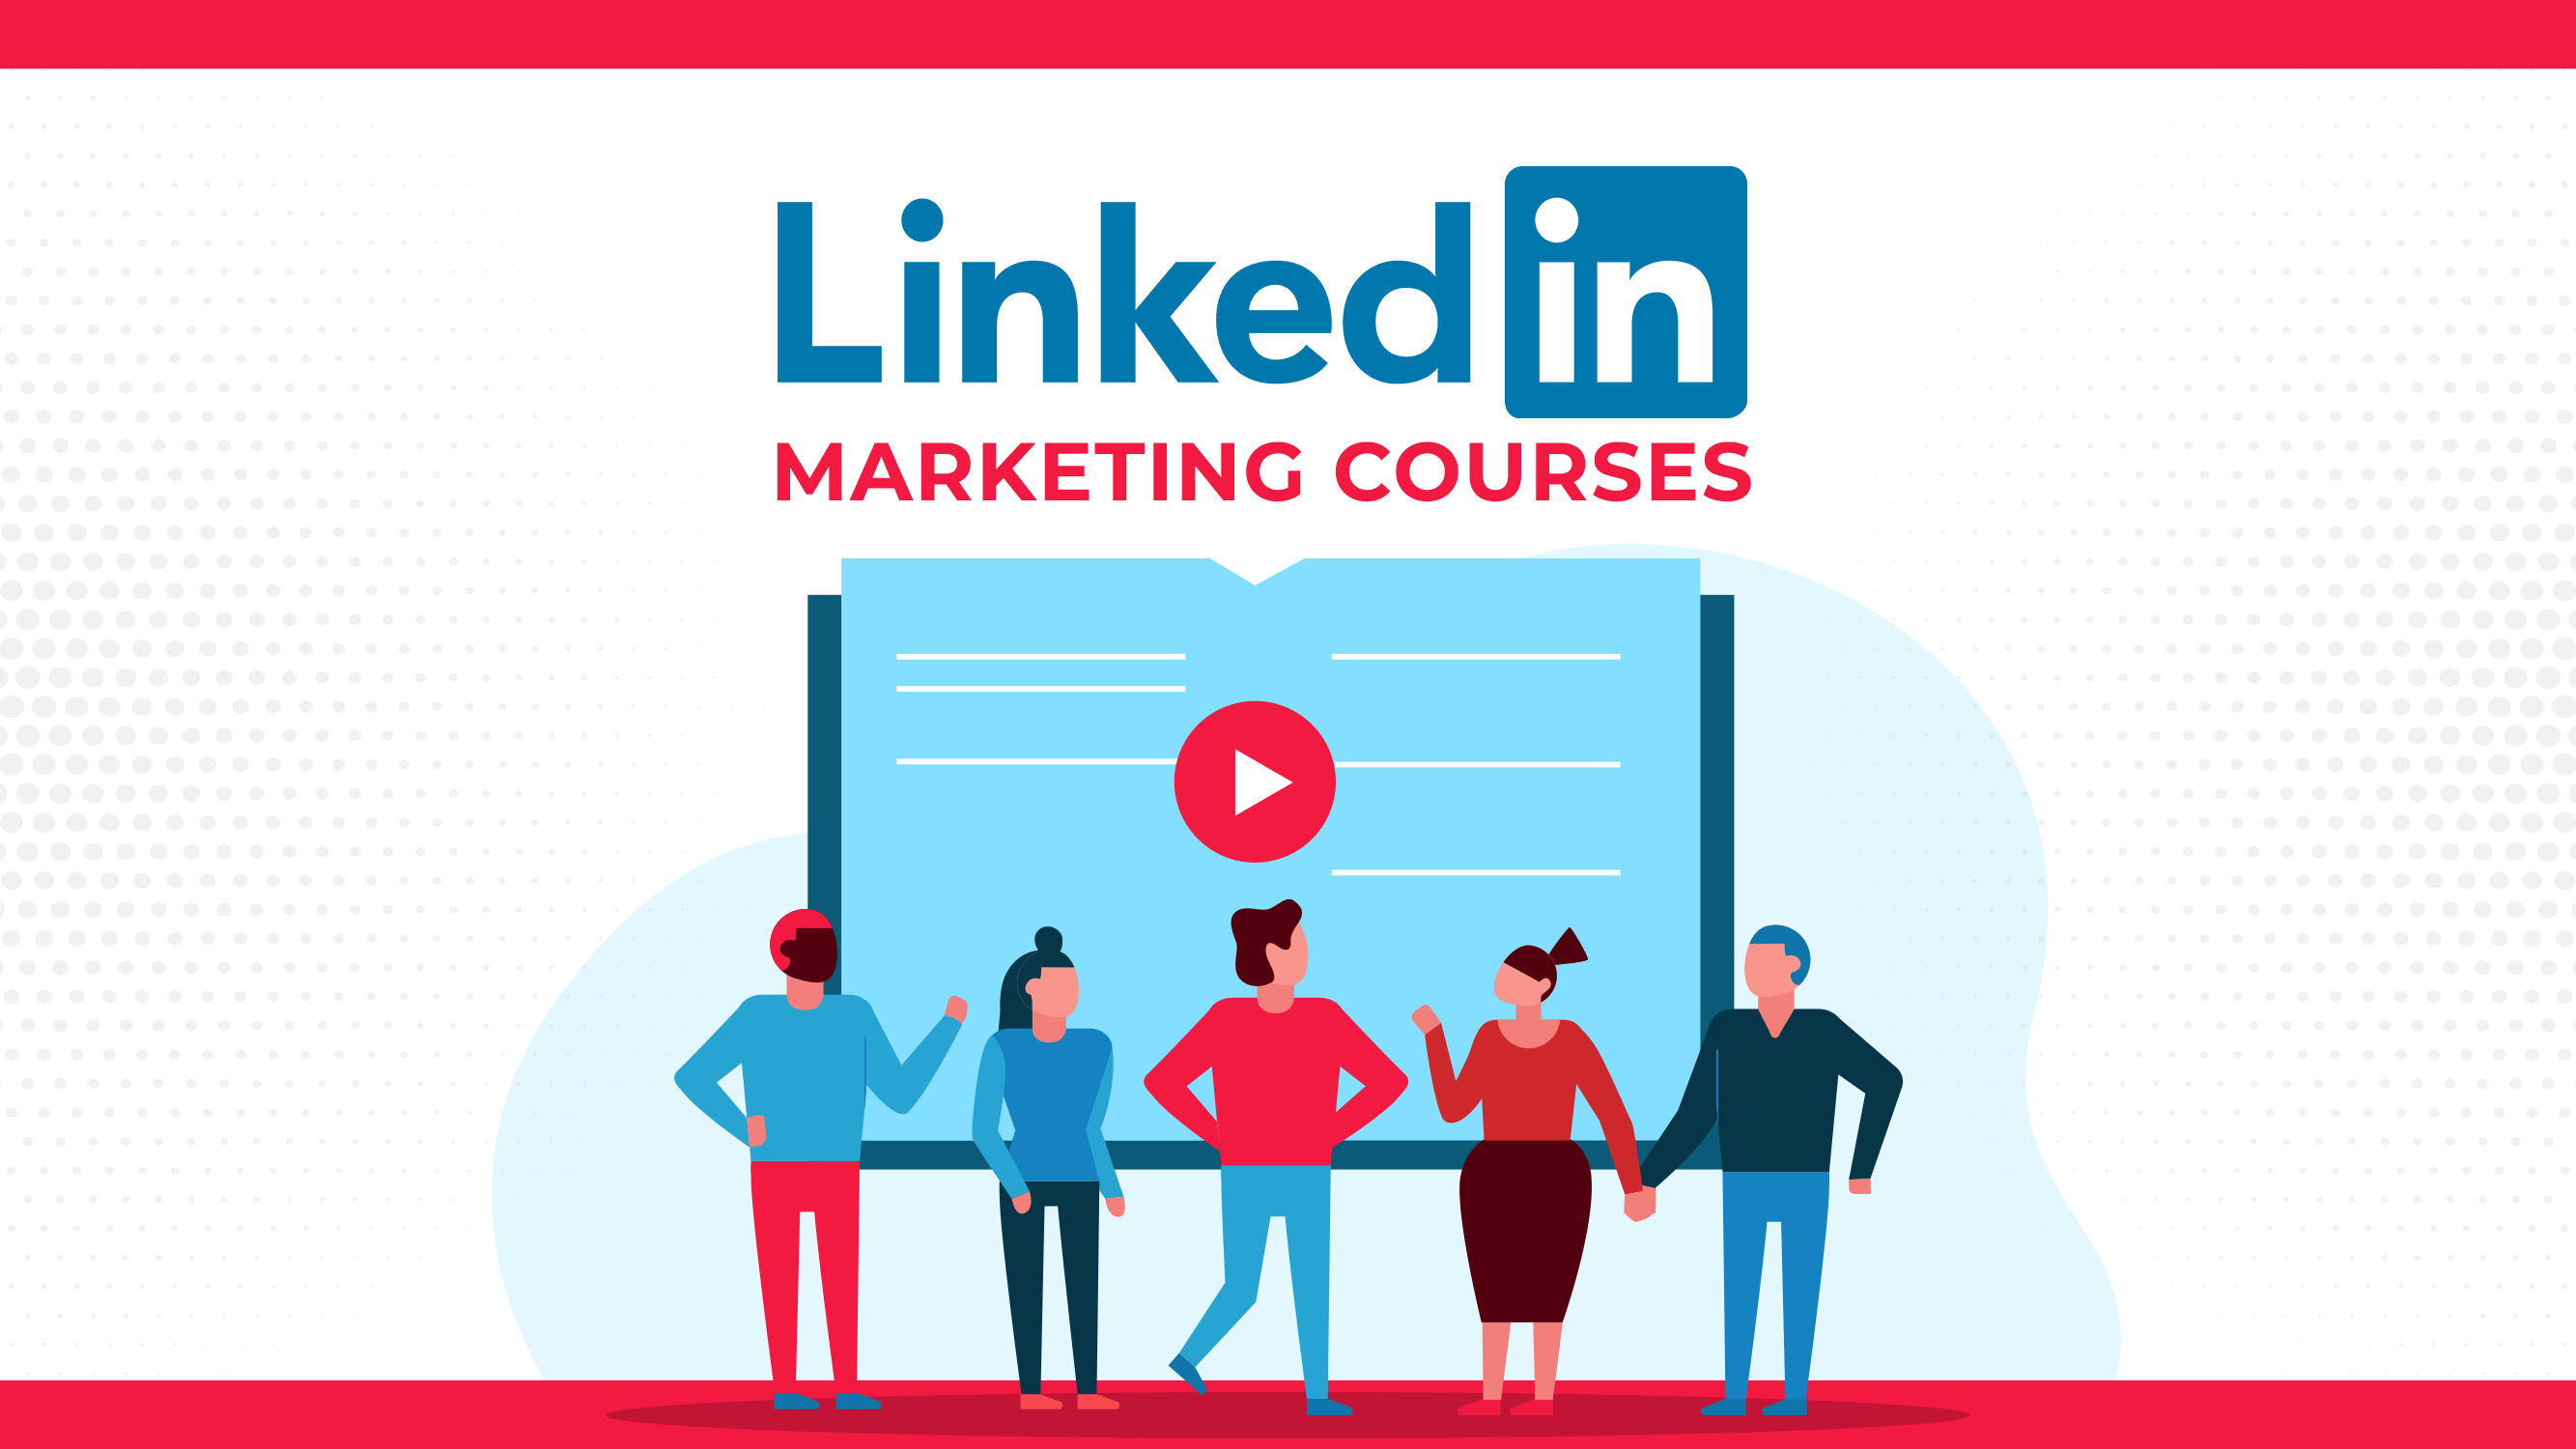 7 Awesome LinkedIn Marketing Courses You Need To Try